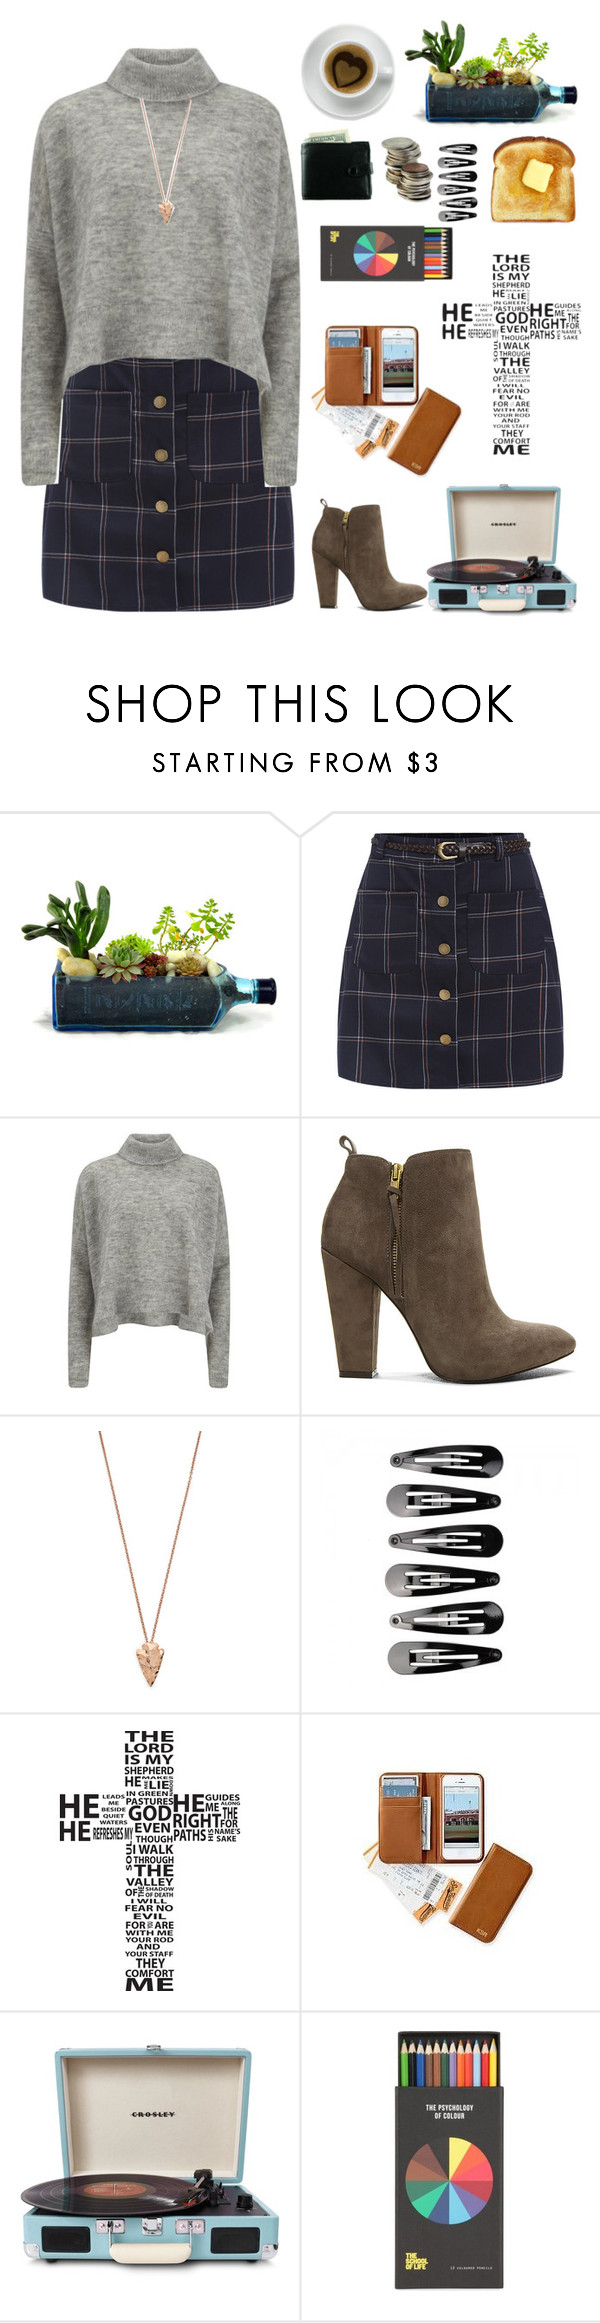 """20 days till Christmas! ⛄"" by genesis129 ❤ liked on Polyvore featuring Designers Remix, Steve Madden, Pamela Love, Crosley, Christmas, mountains and countdown"